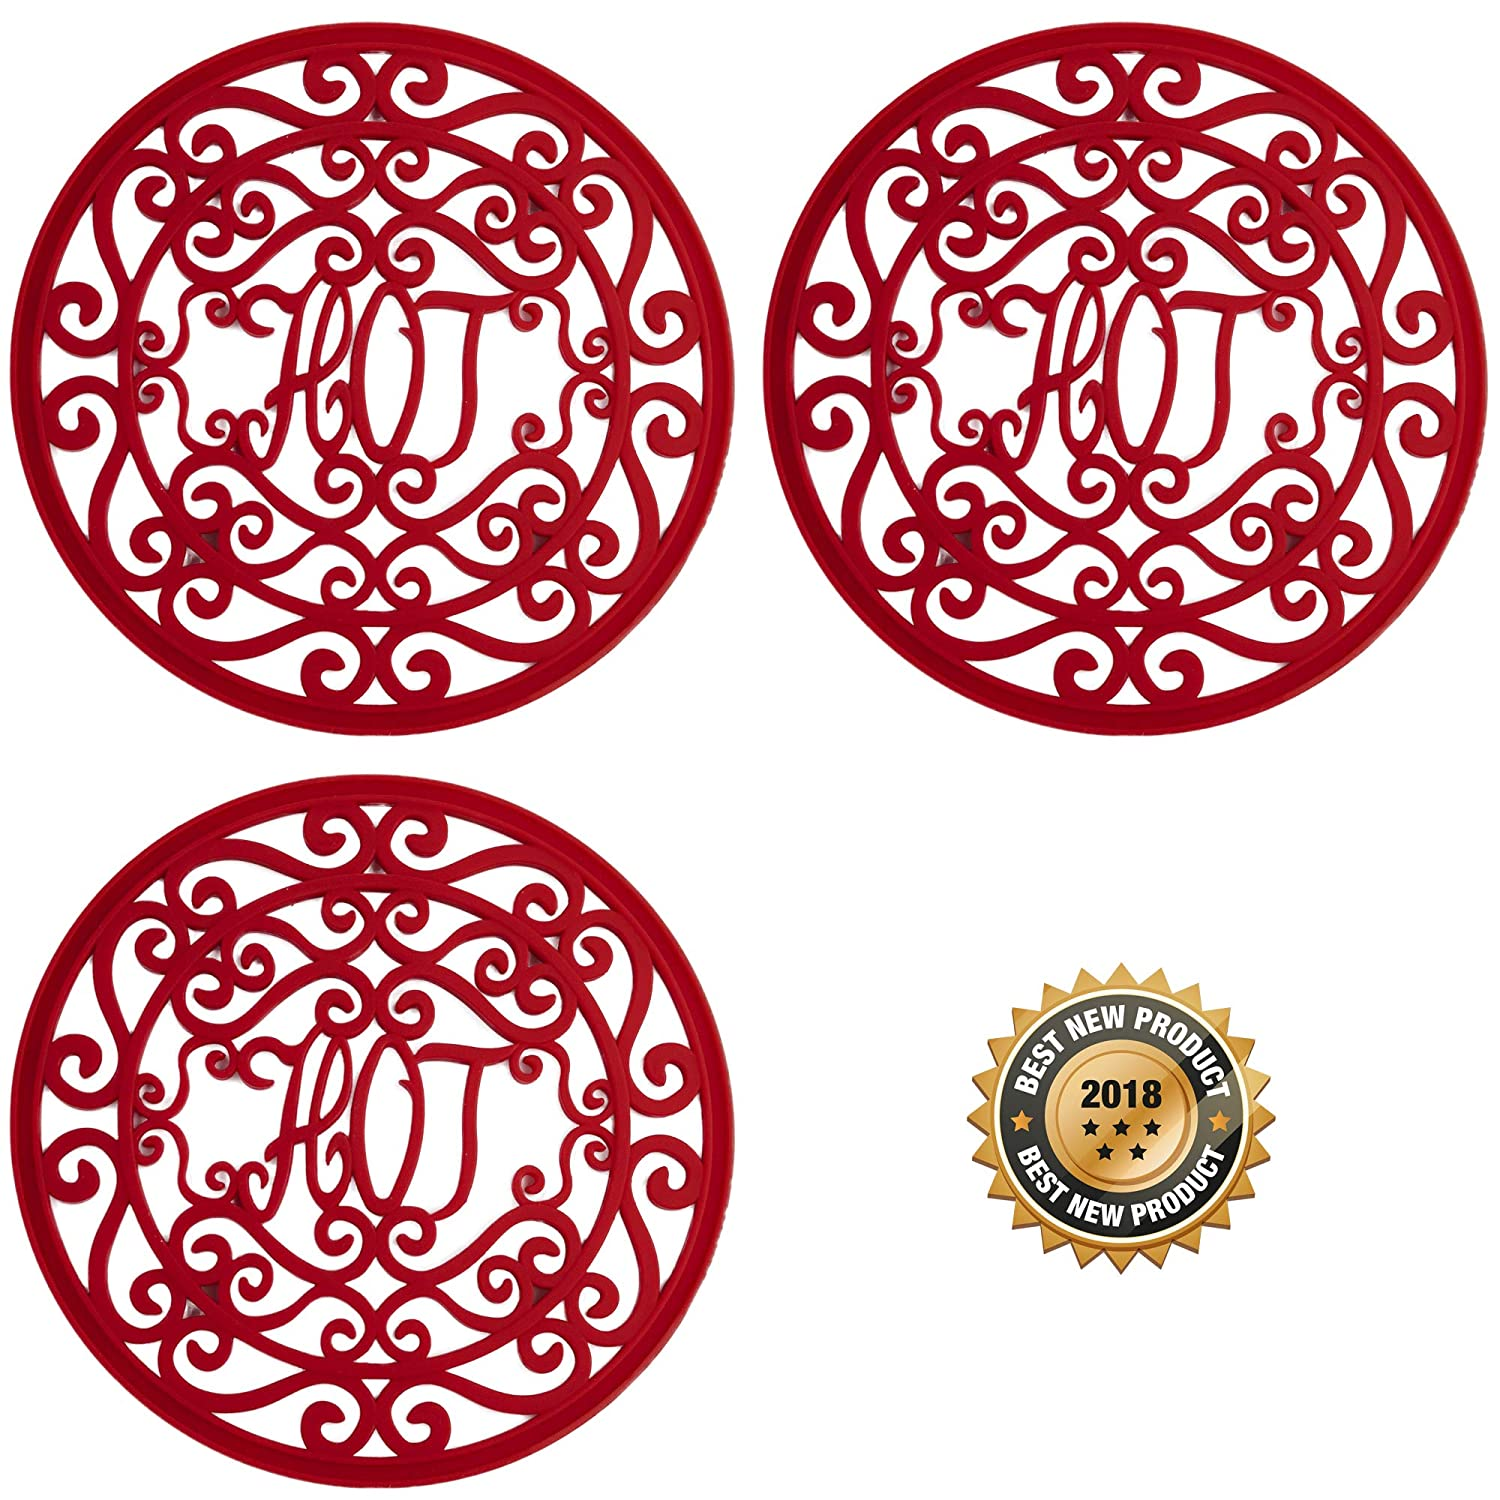 "Silicone Trivets Set For Hot Dishes | Modern Kitchen Hot Pads For Pots & Pans | ""Hot"" Ironworks Design (Rustic Charm) Mimics A Cast Iron Trivet (7.5"" Round, Set of 3, Coral Red) Love This Want This LTK-OT-HR"